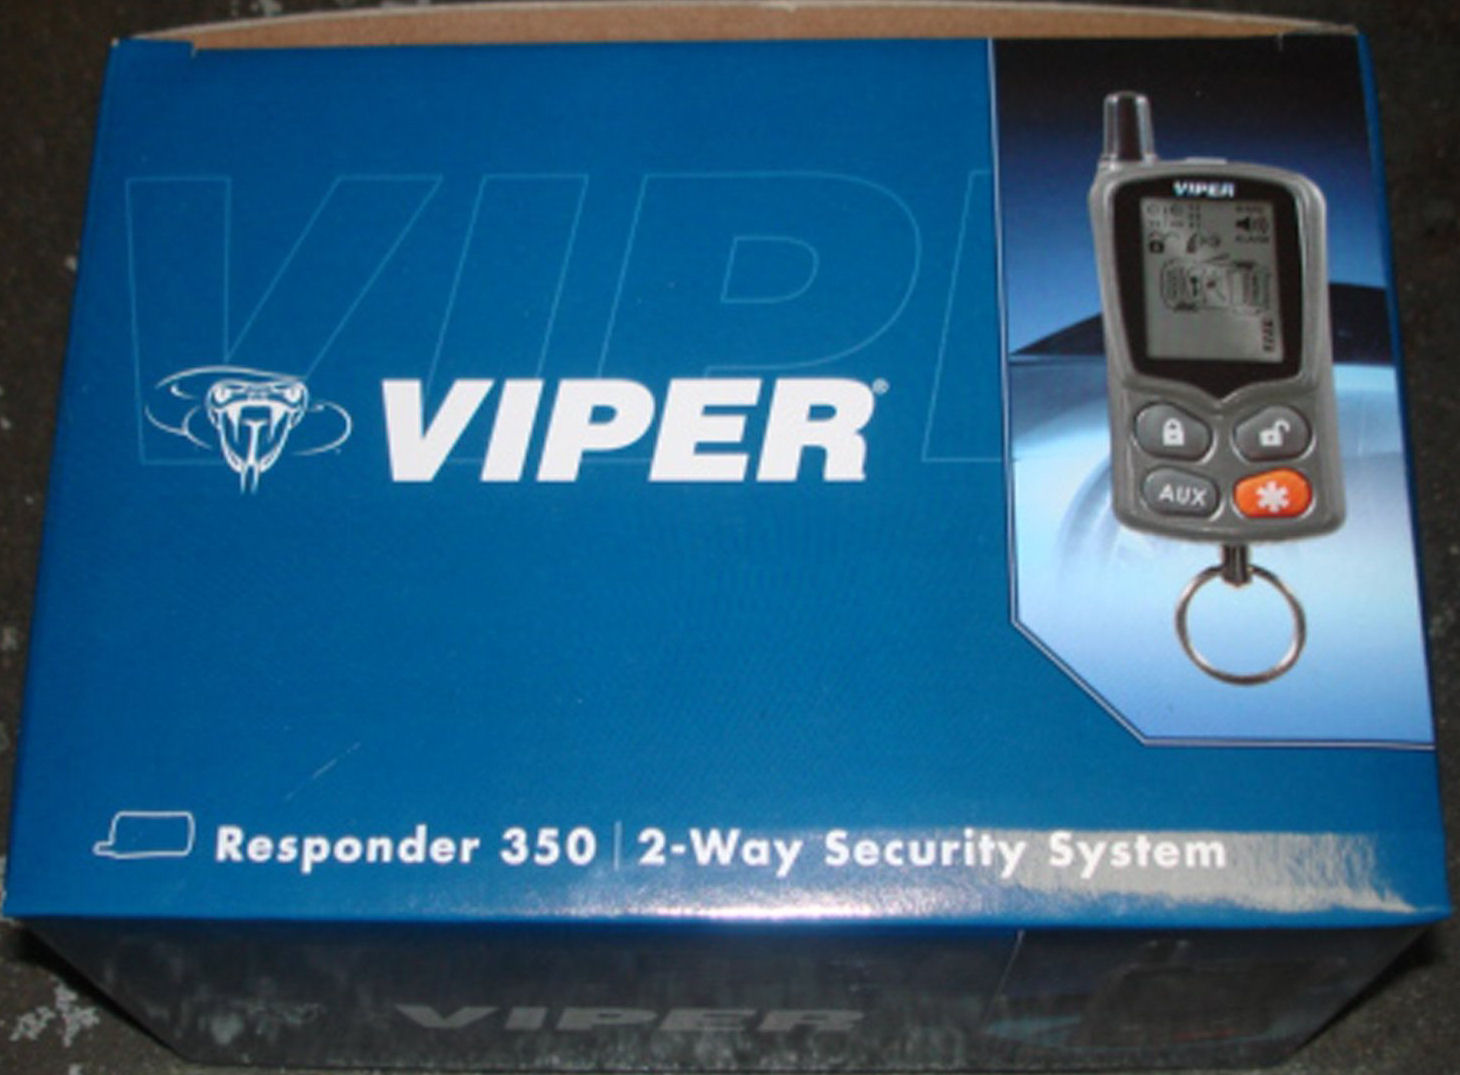 Viper 350 Responder Vehicle Alarm and Keyless Entry System